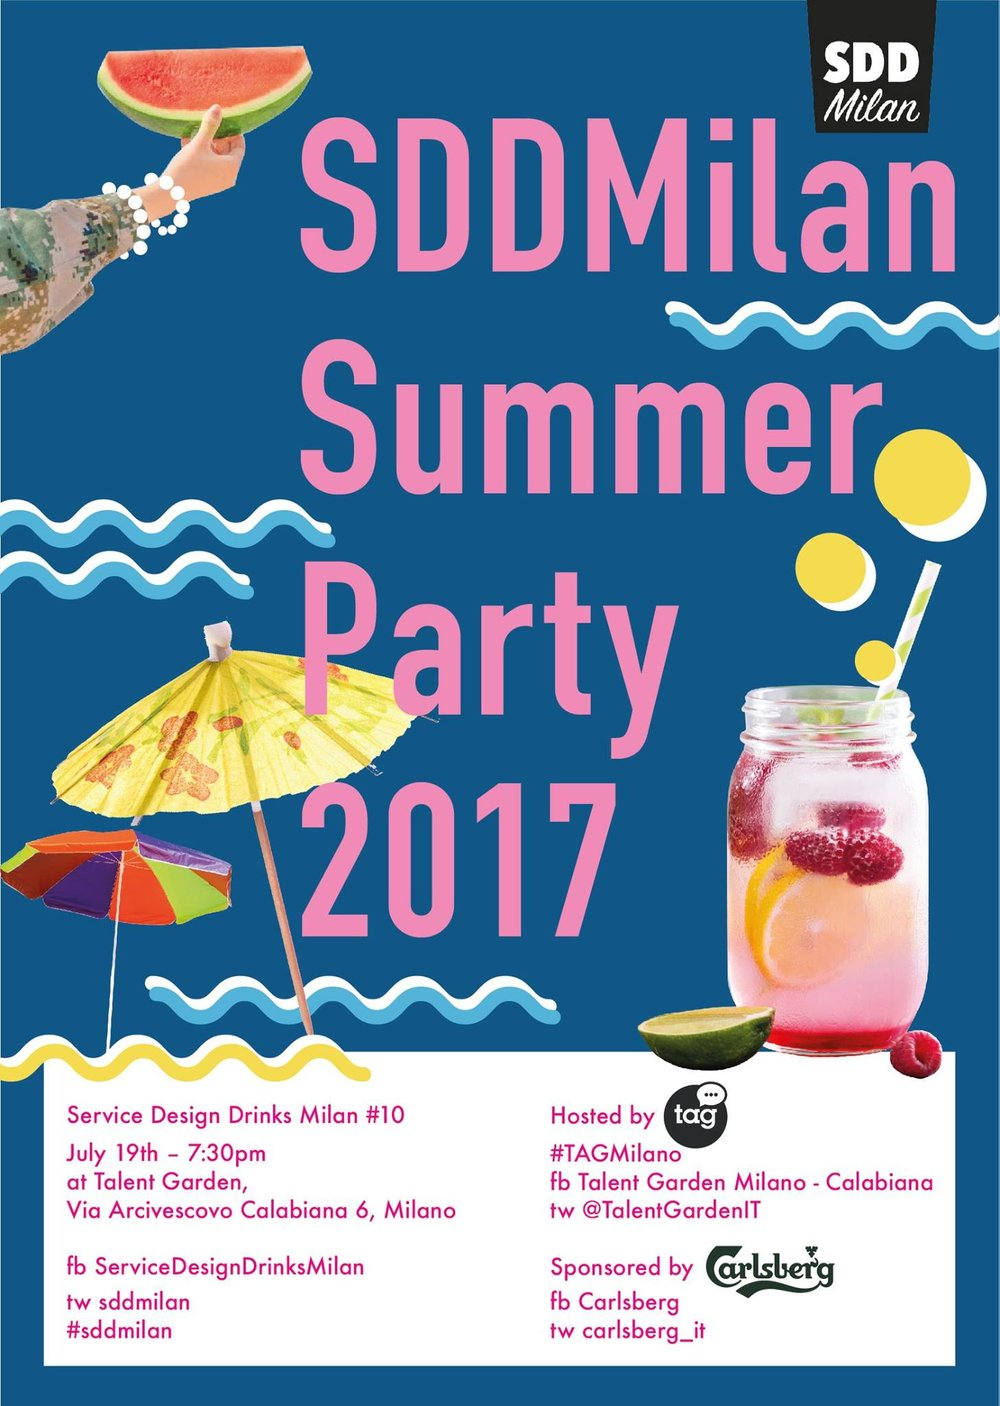 Service Design Drinks Milan #10 - Summer Party 2017